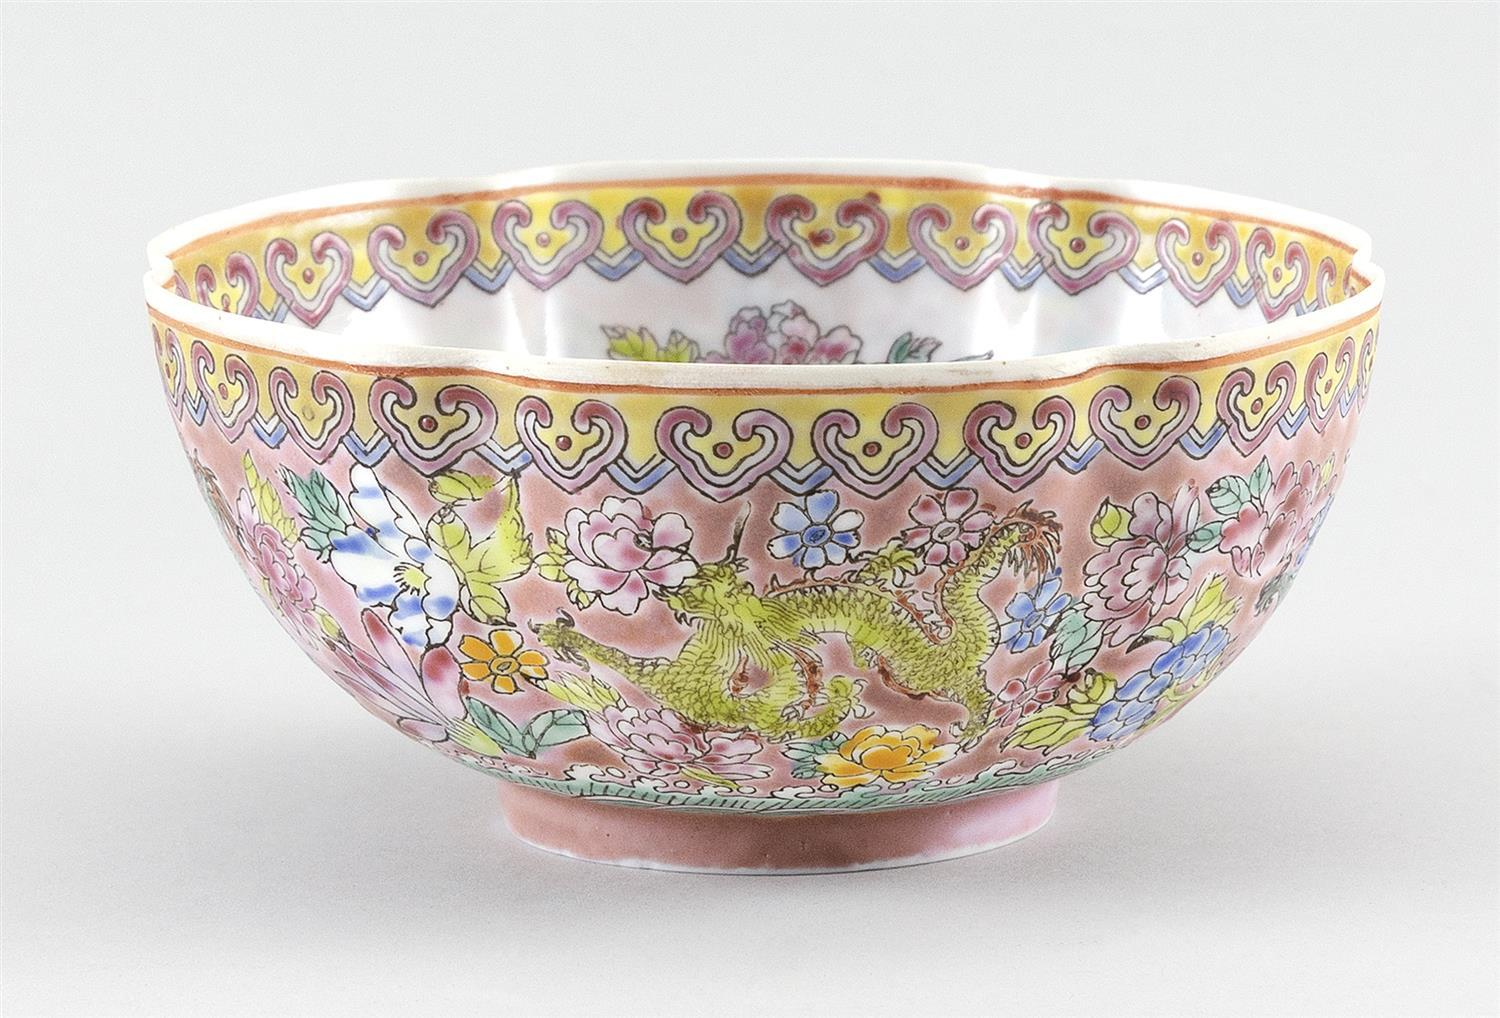 CHINESE FAMILLE ROSE EGGSHELL PORCELAIN FLORIFORM DISH Exterior decoration of green five-clawed dragons and flowers on a pink ground...